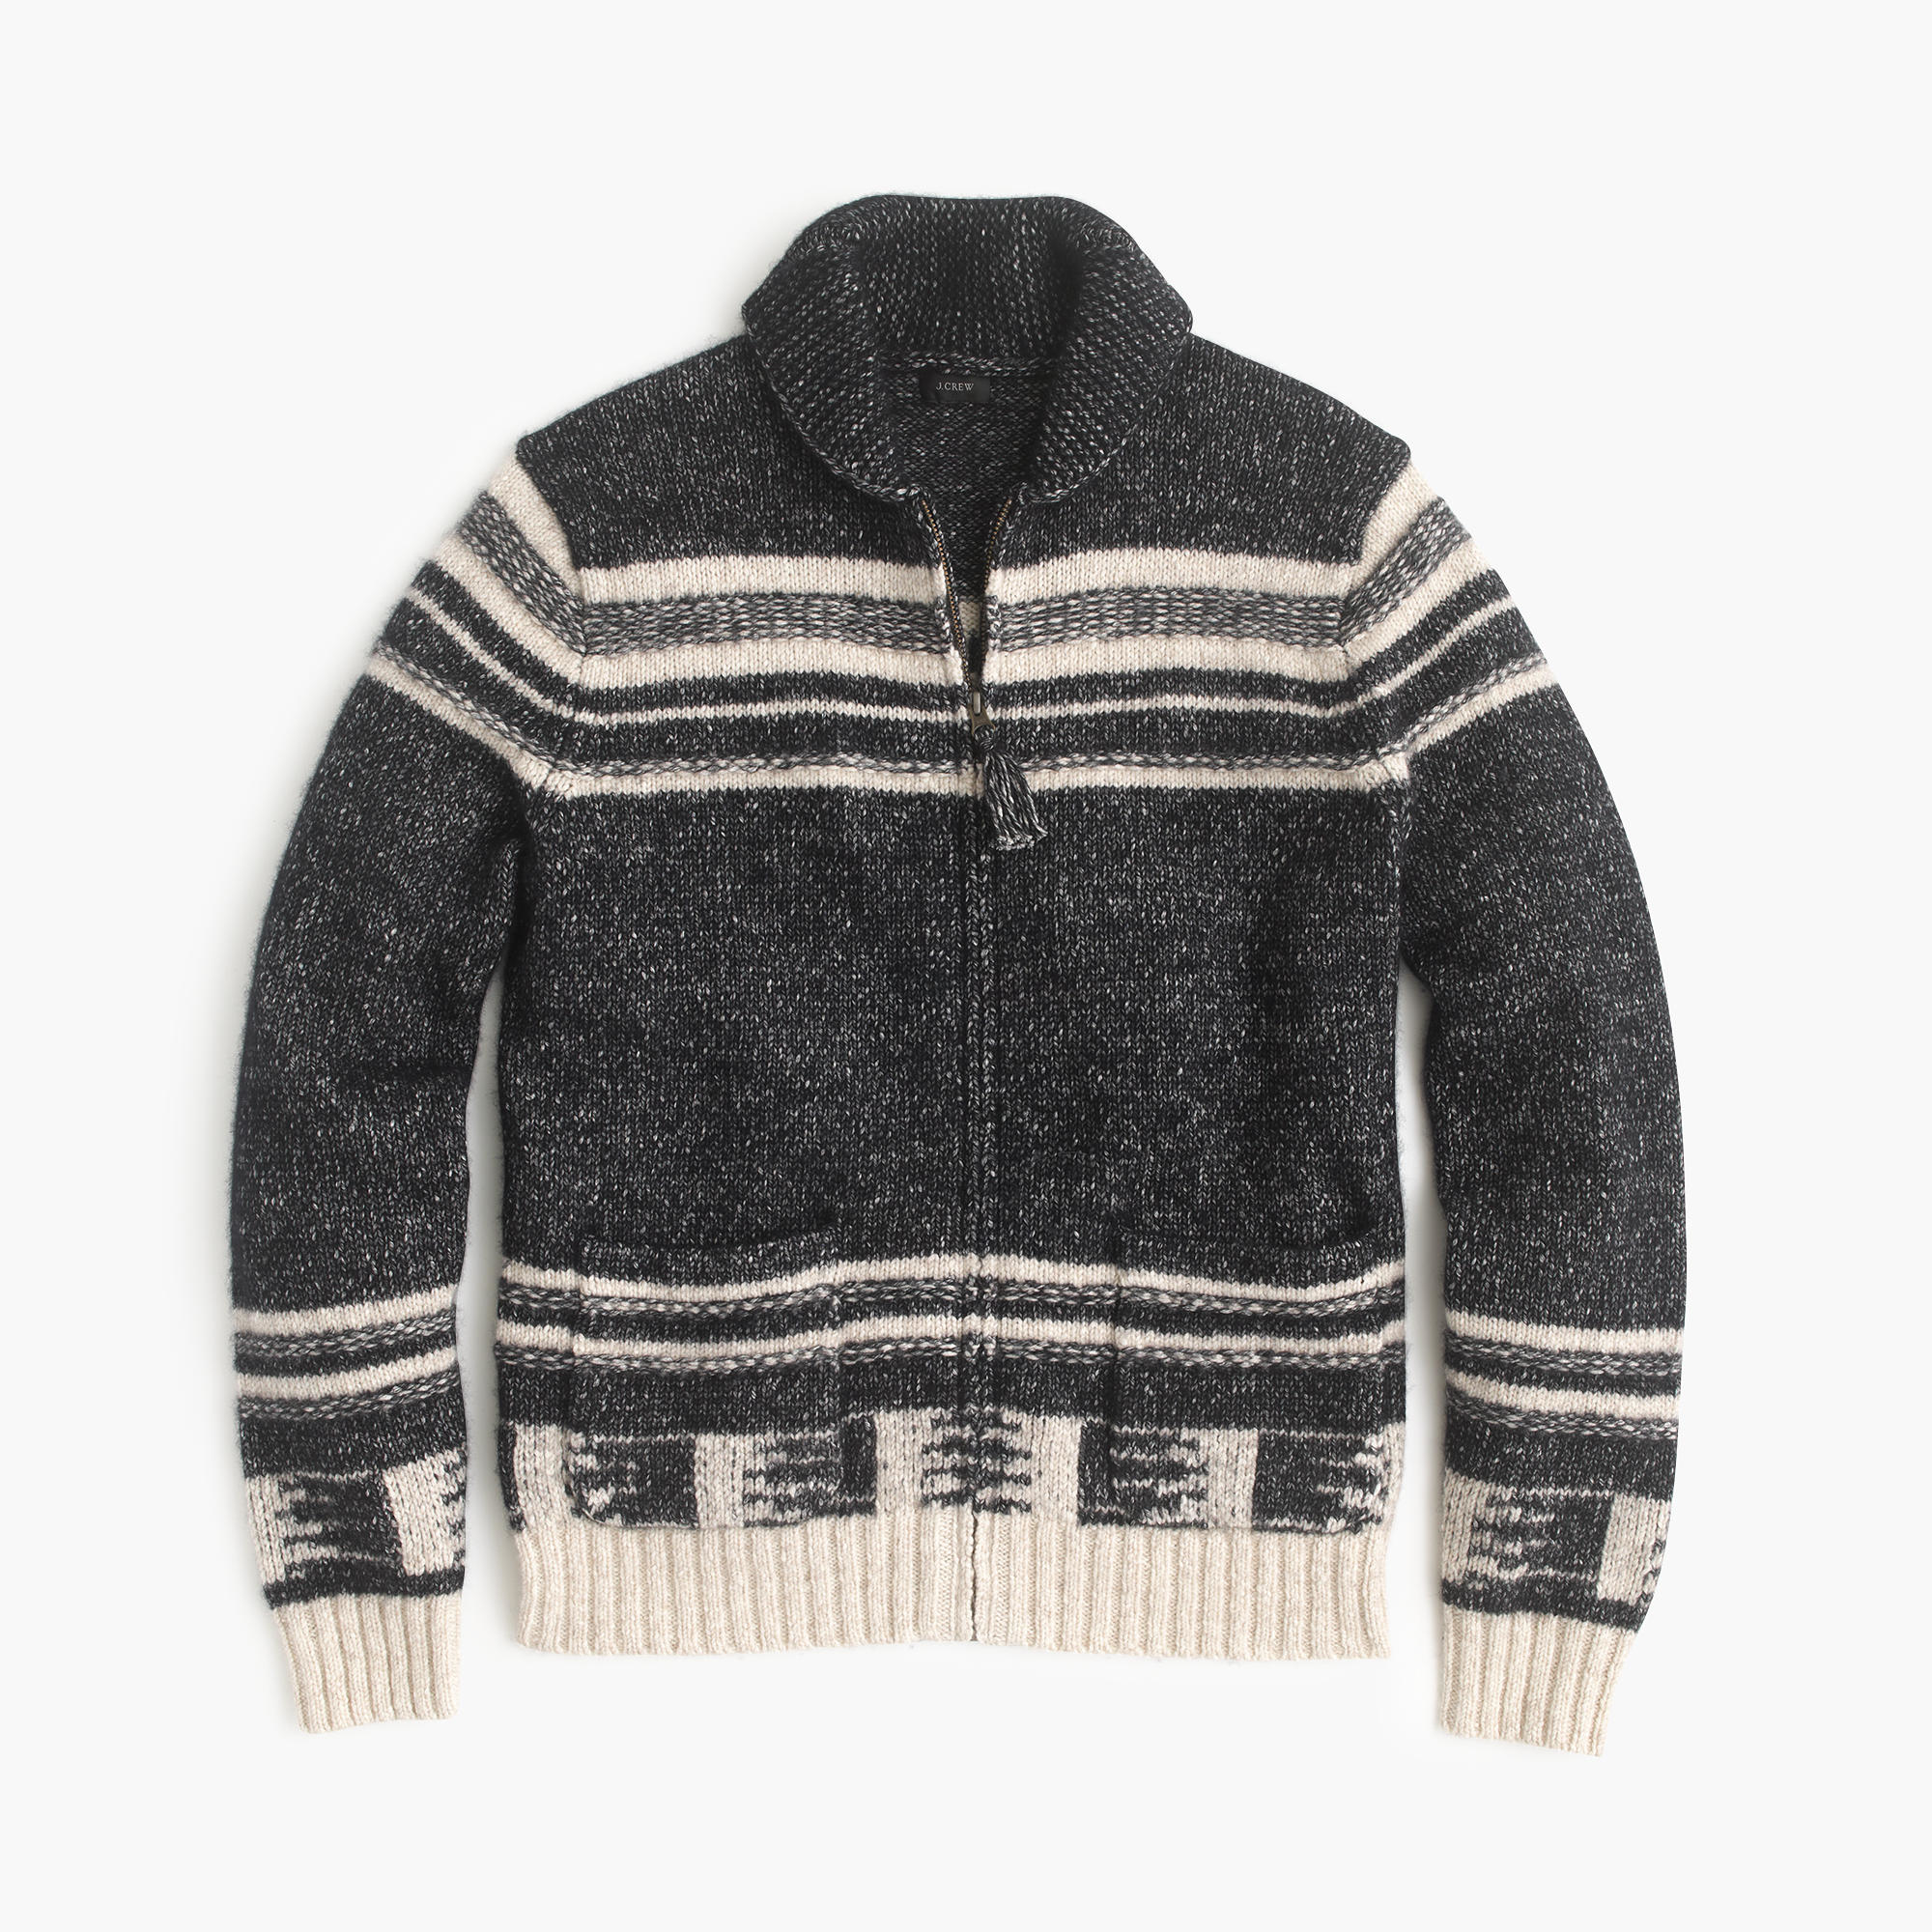 J.crew Cotton-merino Wool Shawl-collar Zip-up Cardigan Sweater in ...